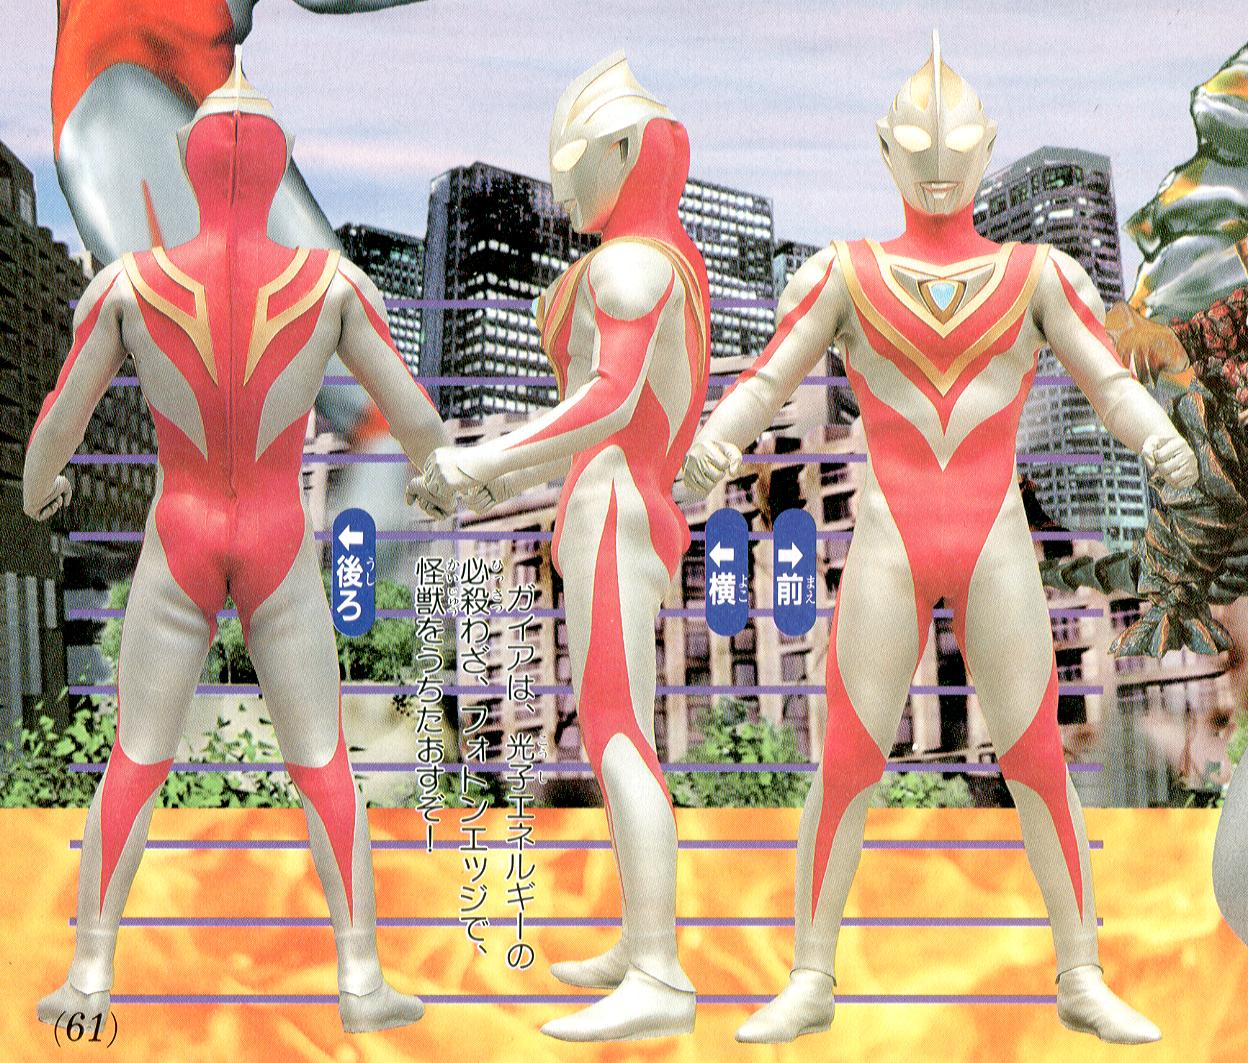 Next Dyna Ultraman Gaia